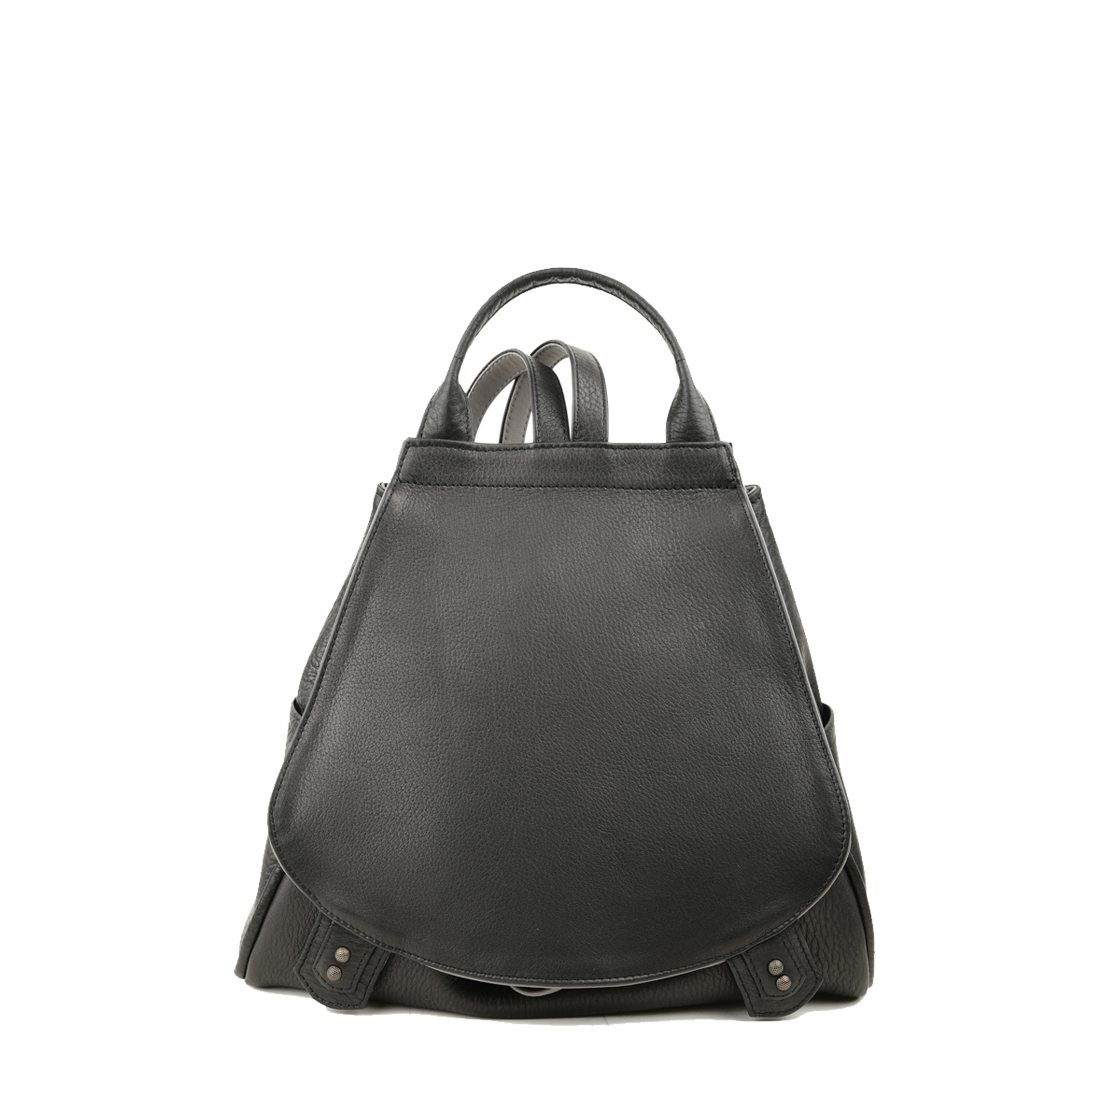 Daliya Black Grigio Leather Backpack